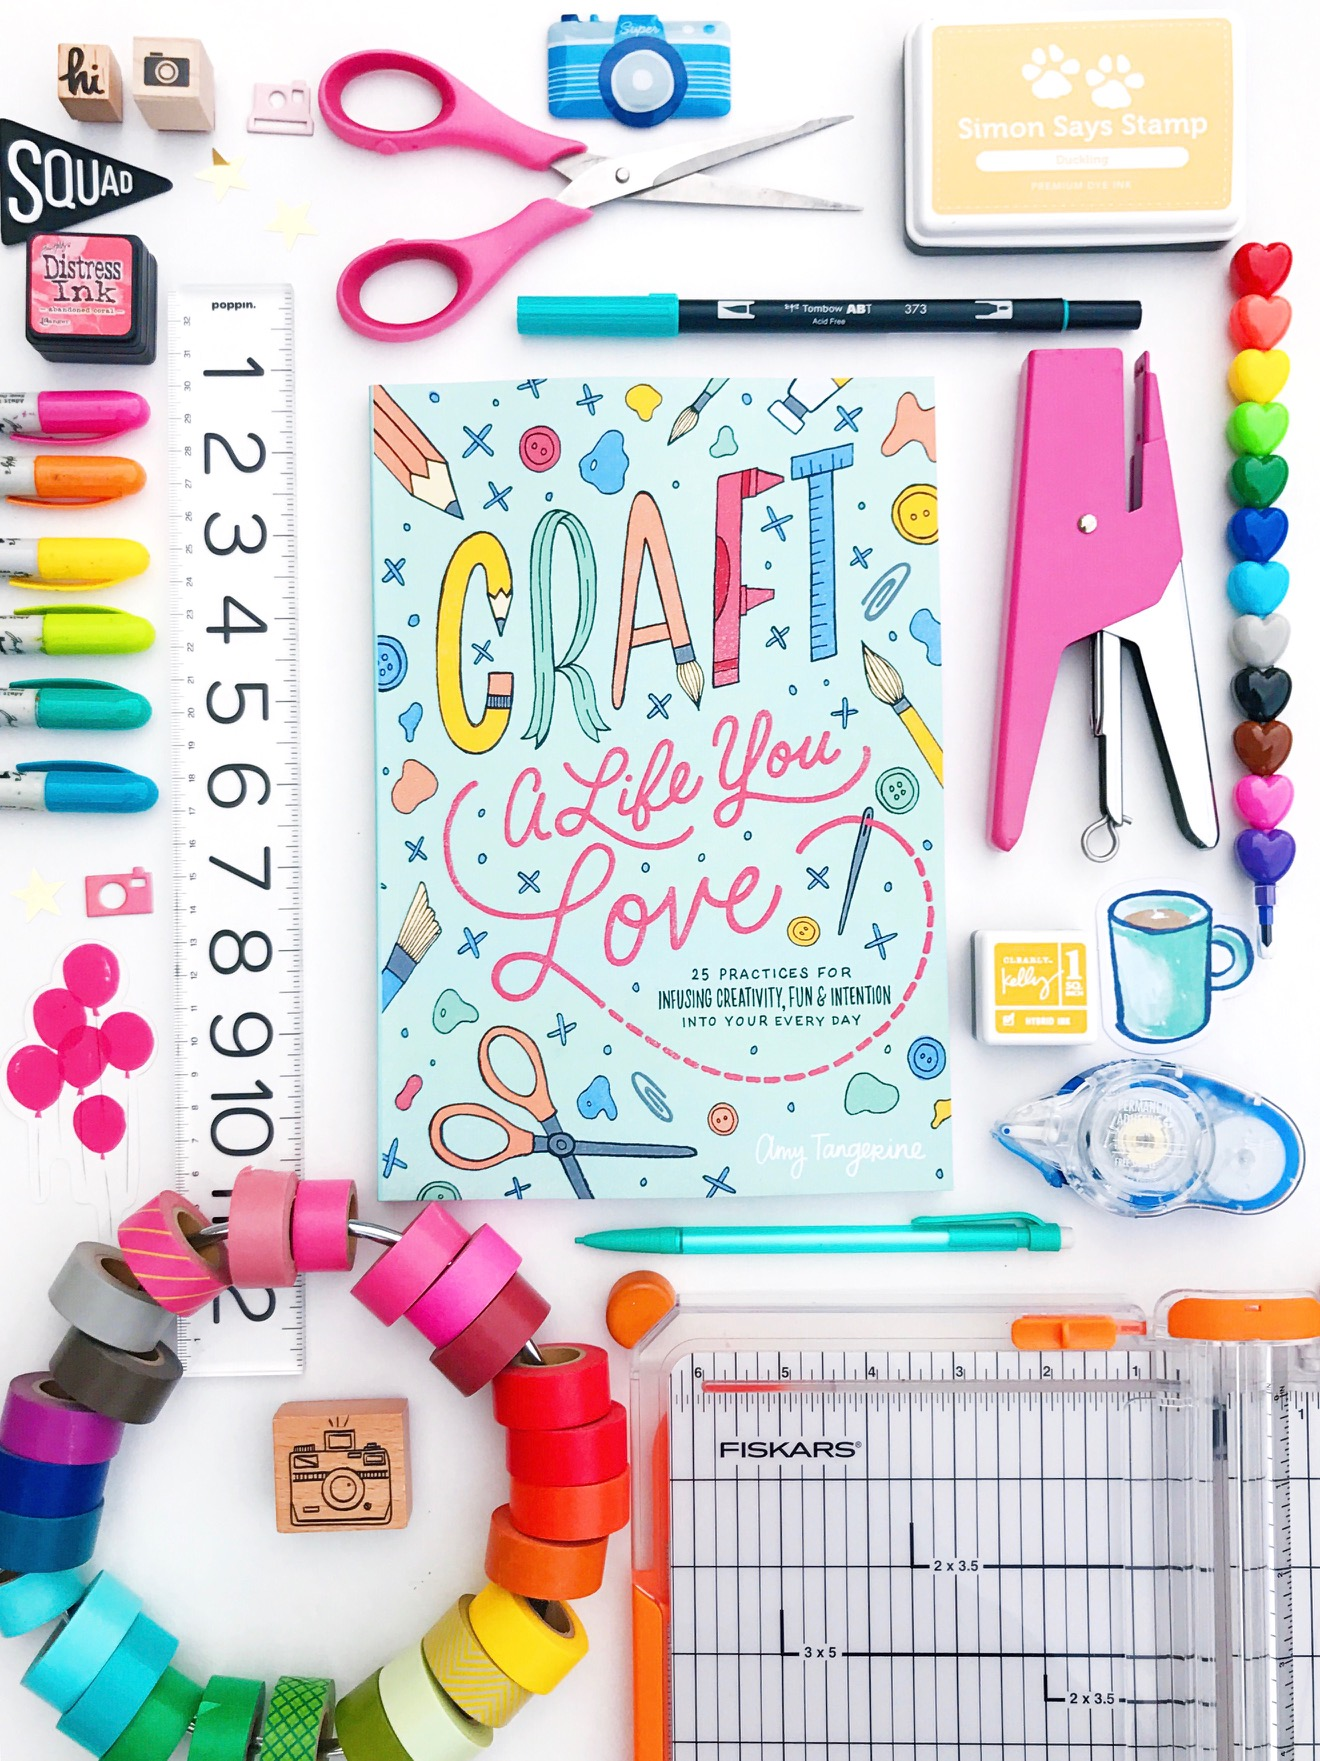 Craft A Life You Love by Amy Tangerine is now available!